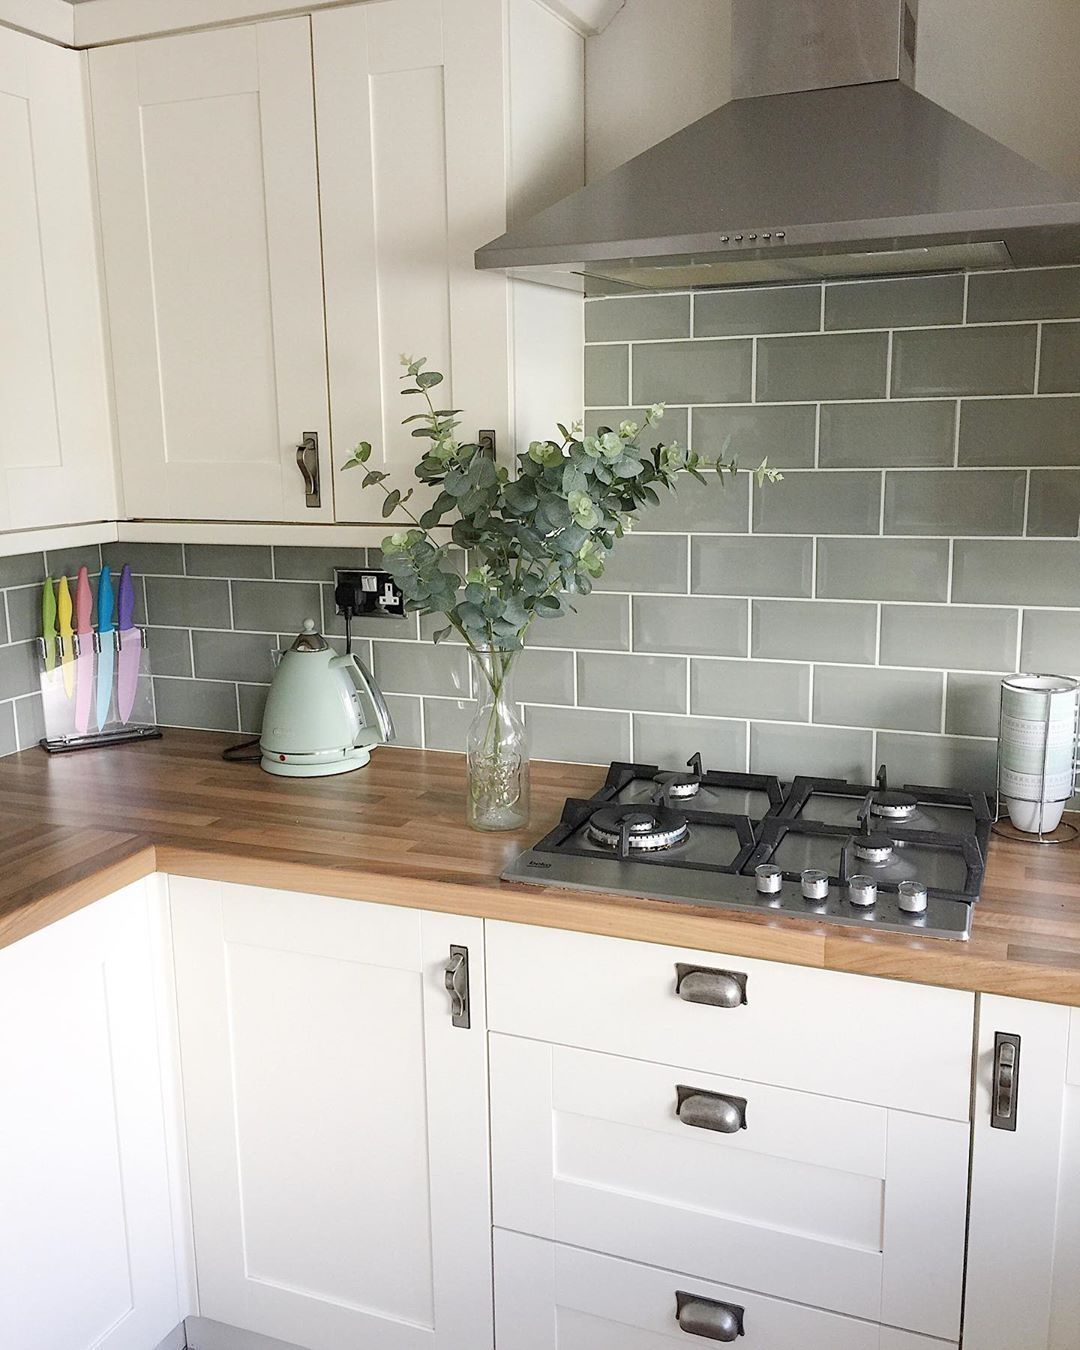 30 Affordable Kitchen Wall Tile Design Ideas To Try Right Now In 2020 Kitchen Wall Tiles Design Kitchen Interior Kitchen Wall Tiles